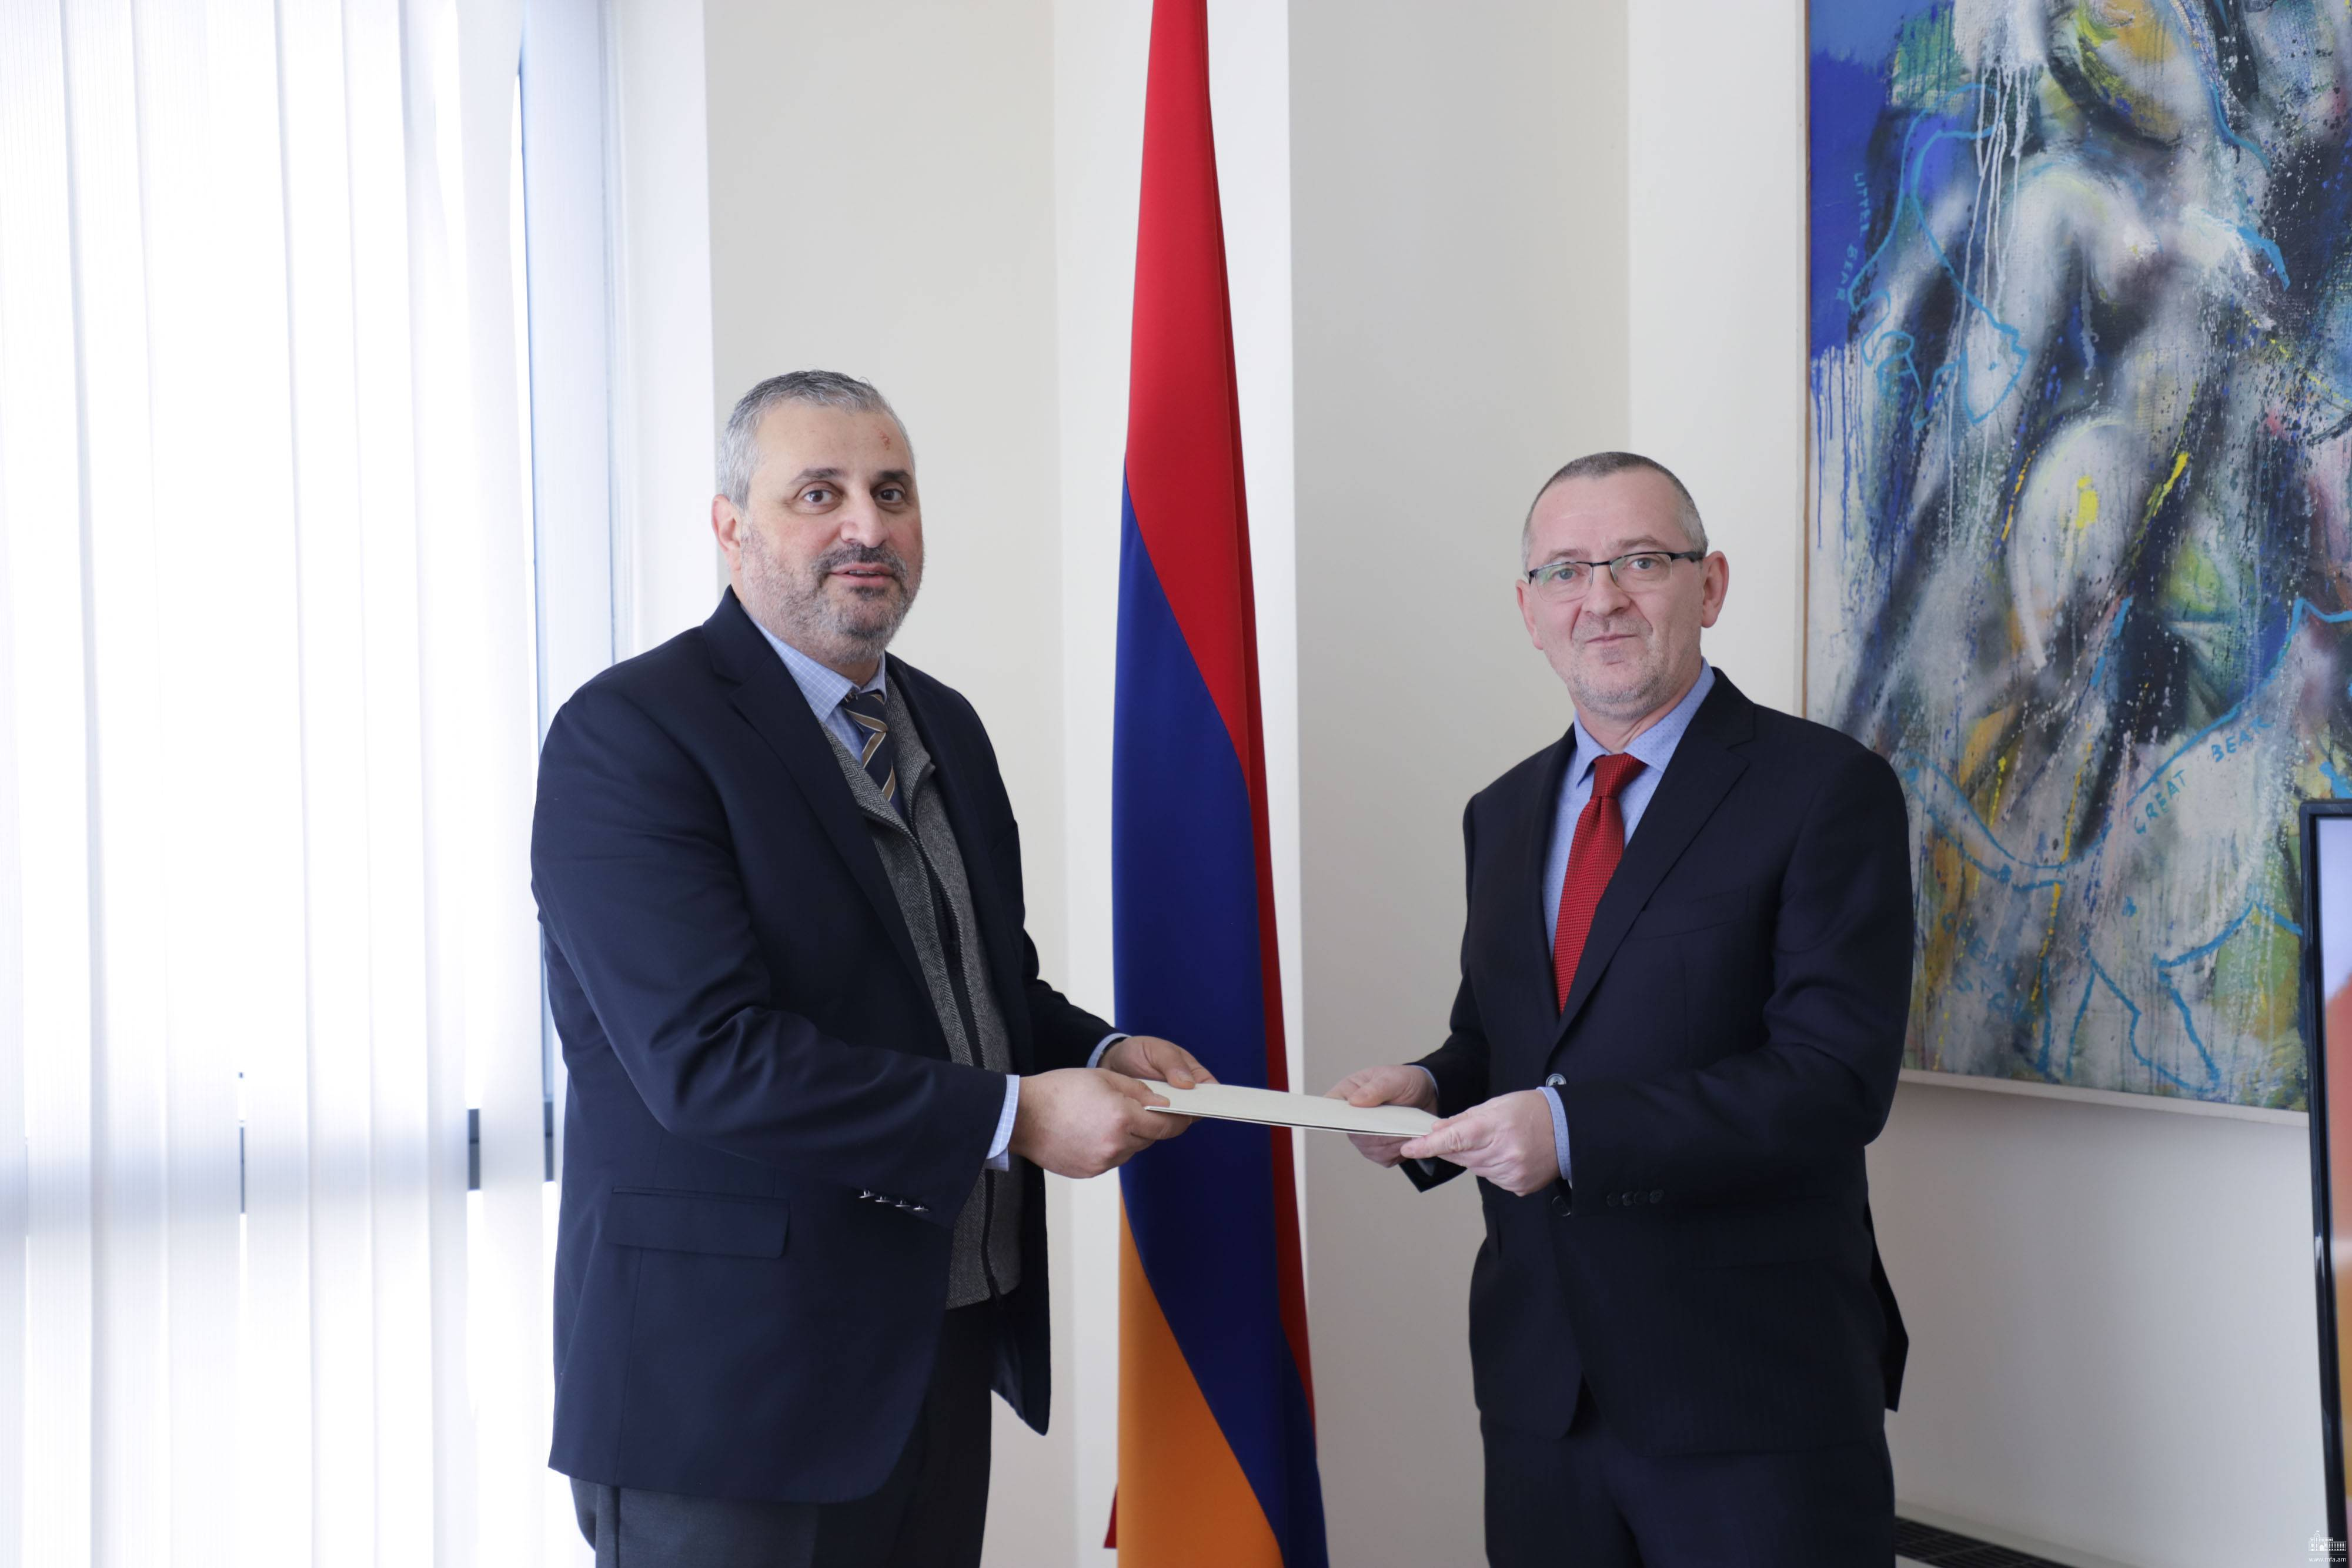 The newly appointed Ambassador of the Republic of Slovenia presented the copy of his credentials to the Deputy Foreign Minister of Armenia